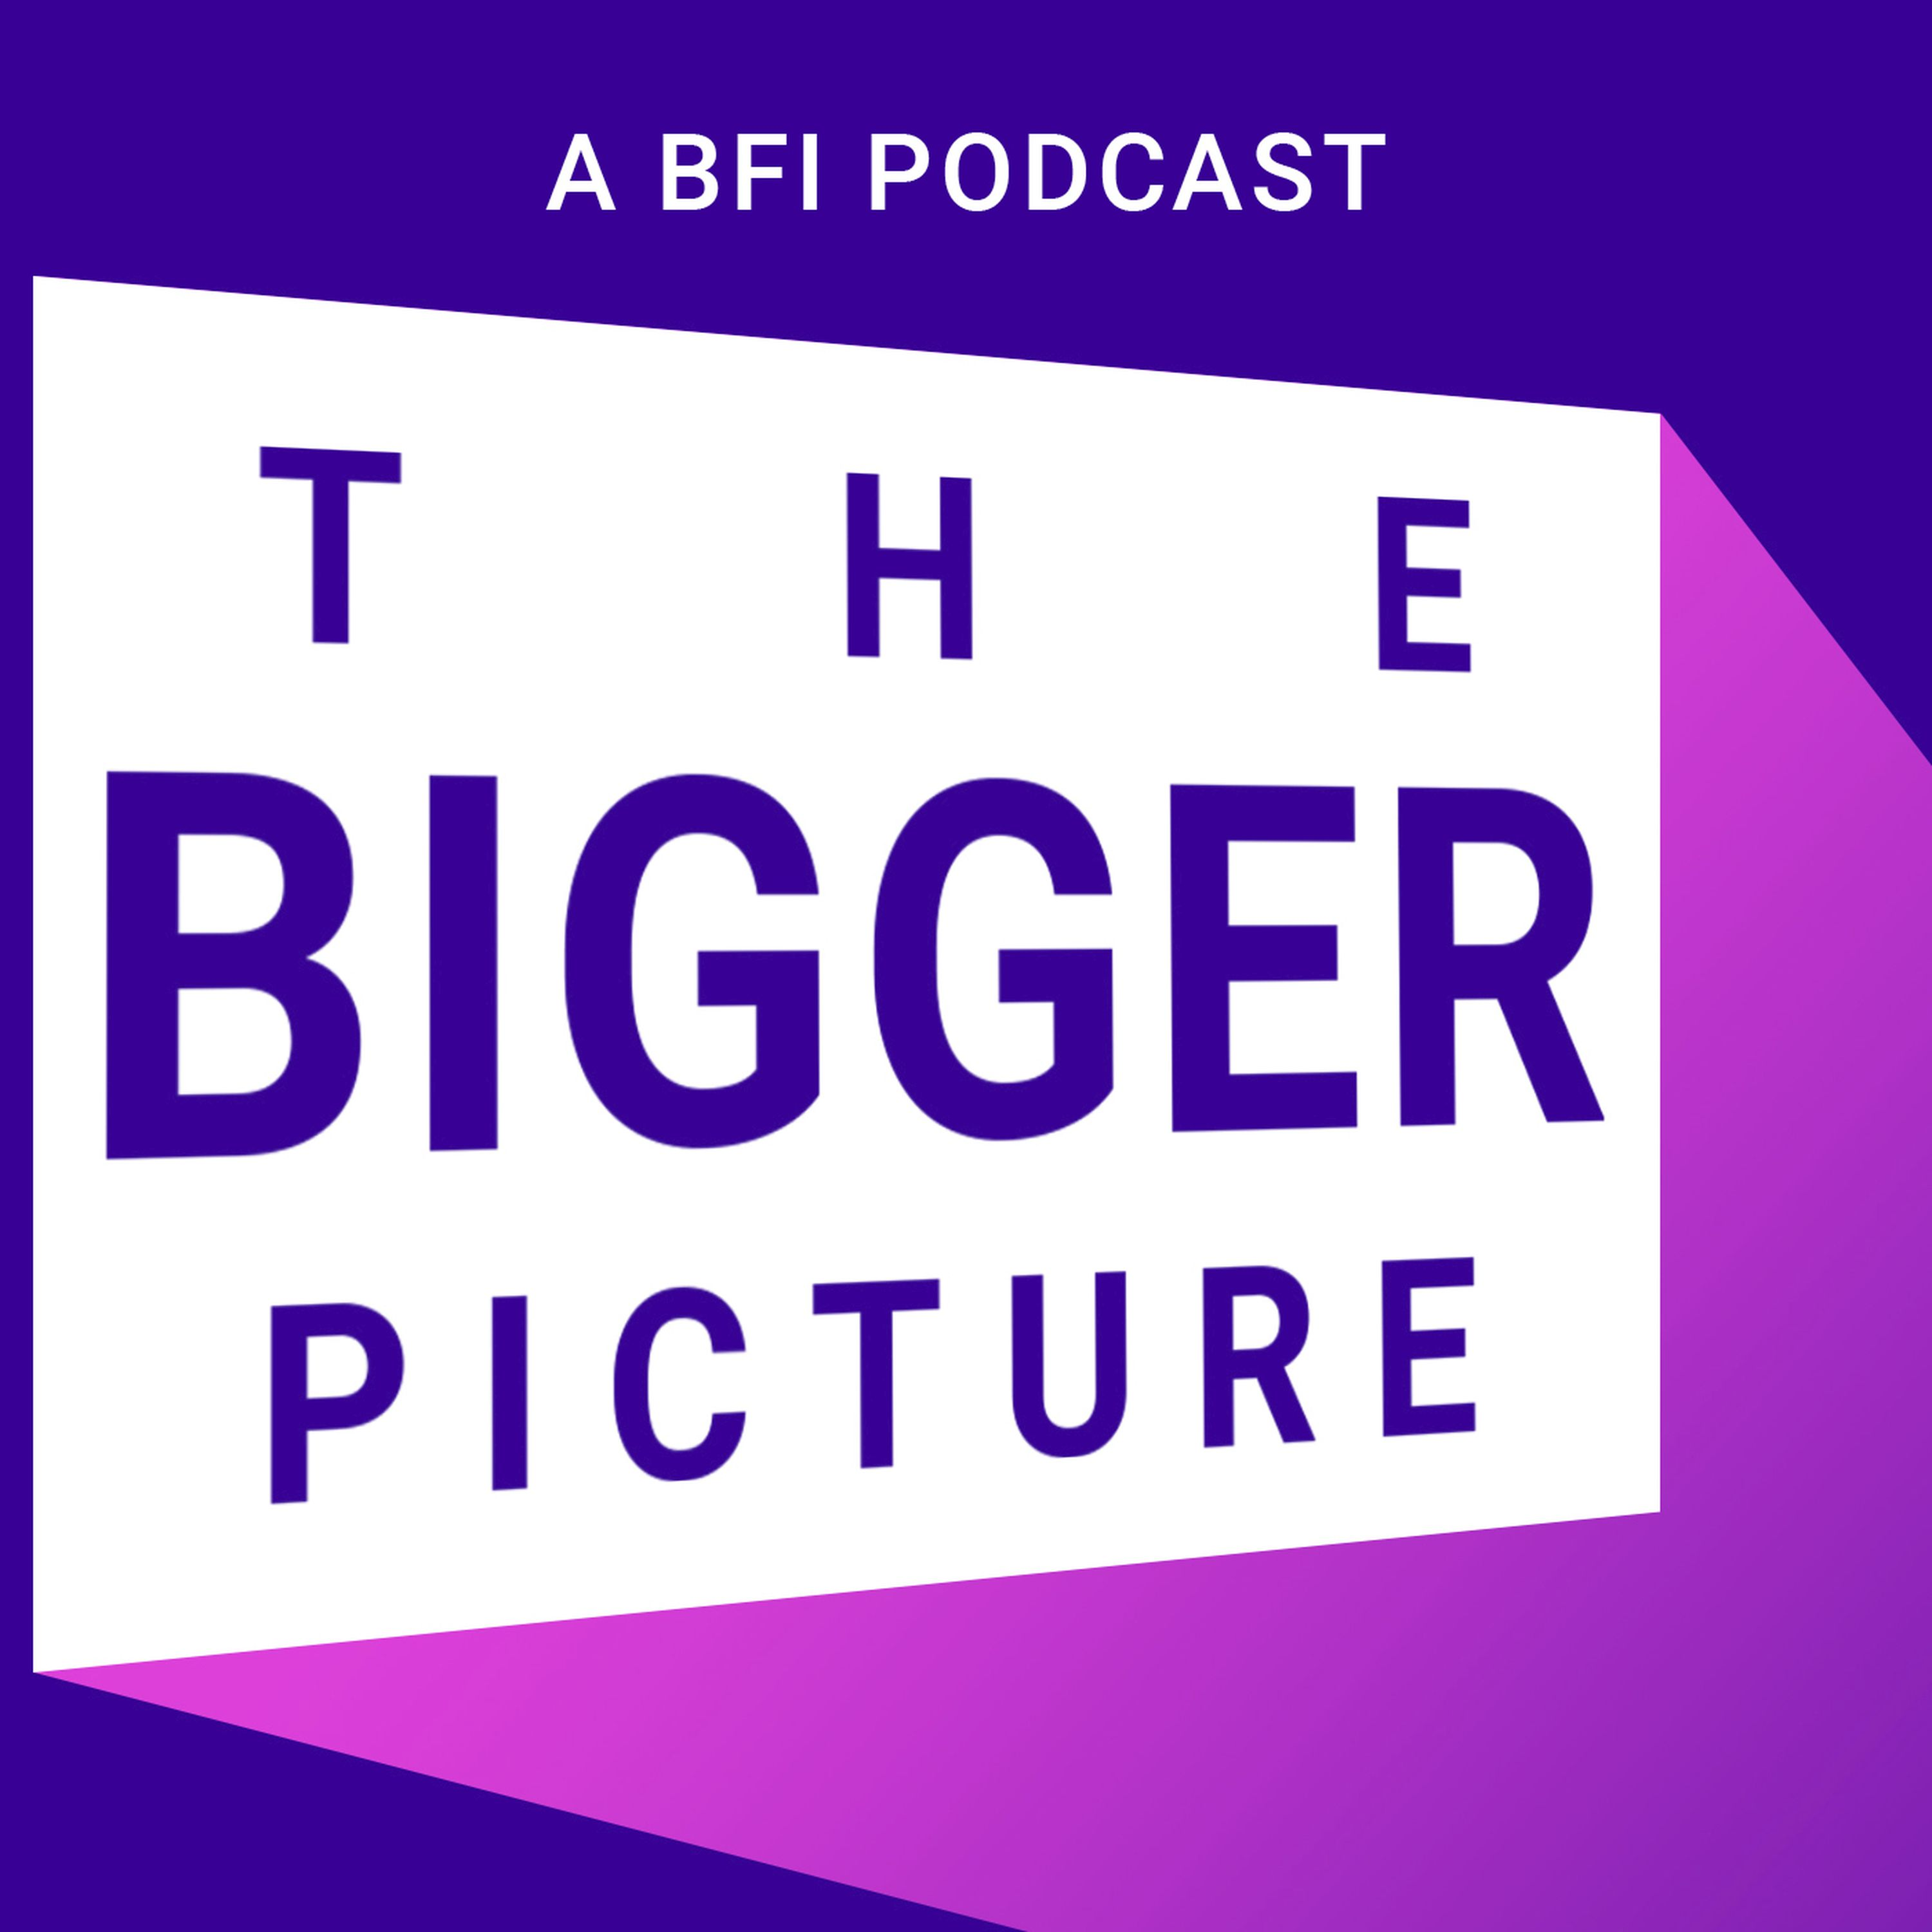 Blinded by the Light and freedom through fandom | The Bigger Picture, presented by The British Film Institute on acast